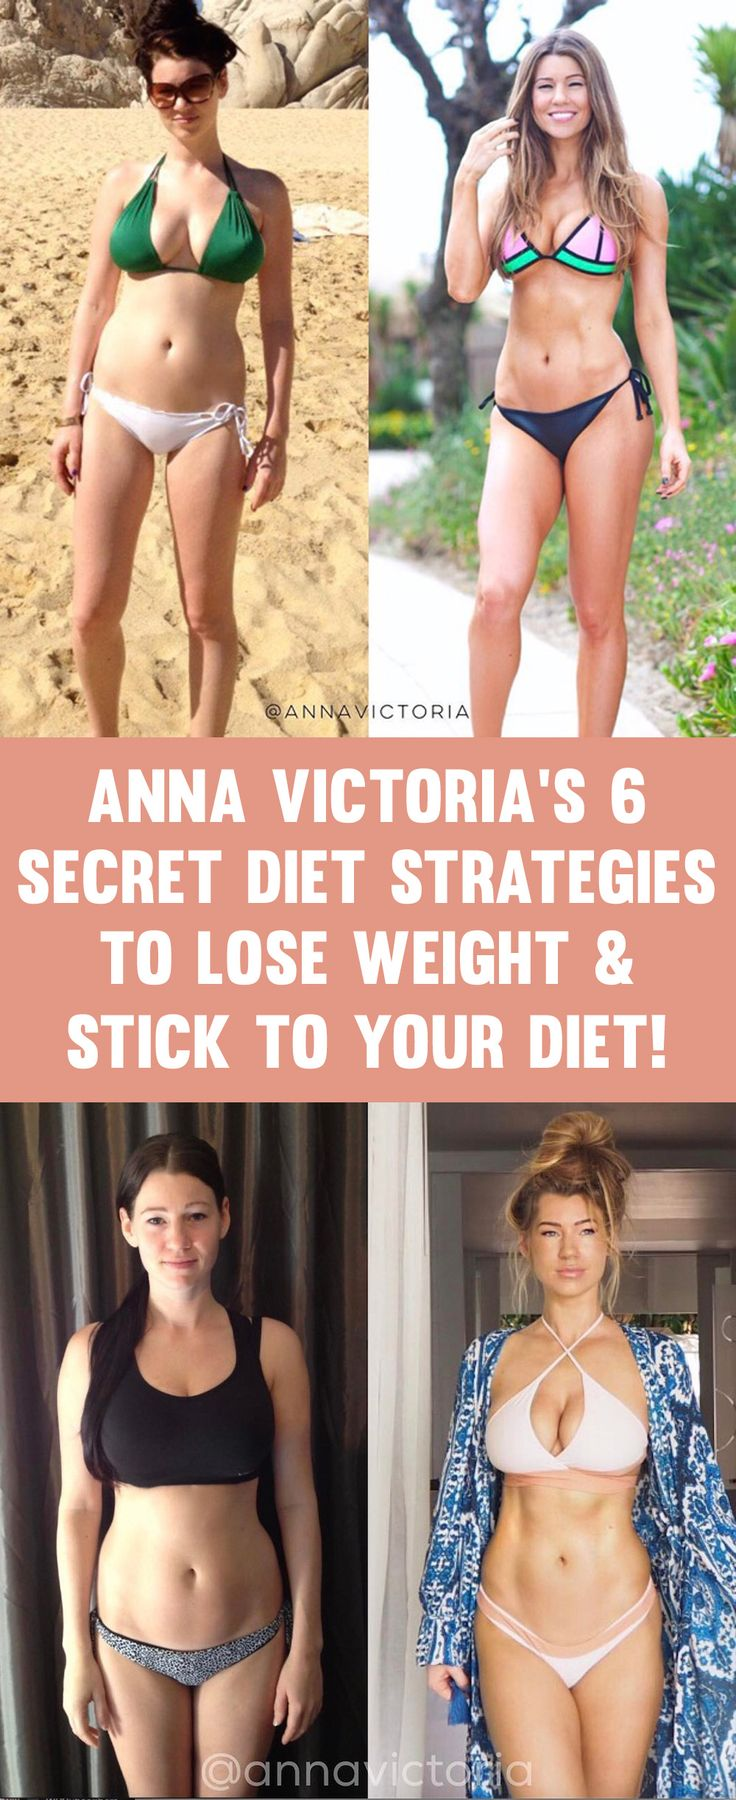 Anna Victoria's 6 Secret Diet Strategies To Lose Weight  & Stick To Your Diet!